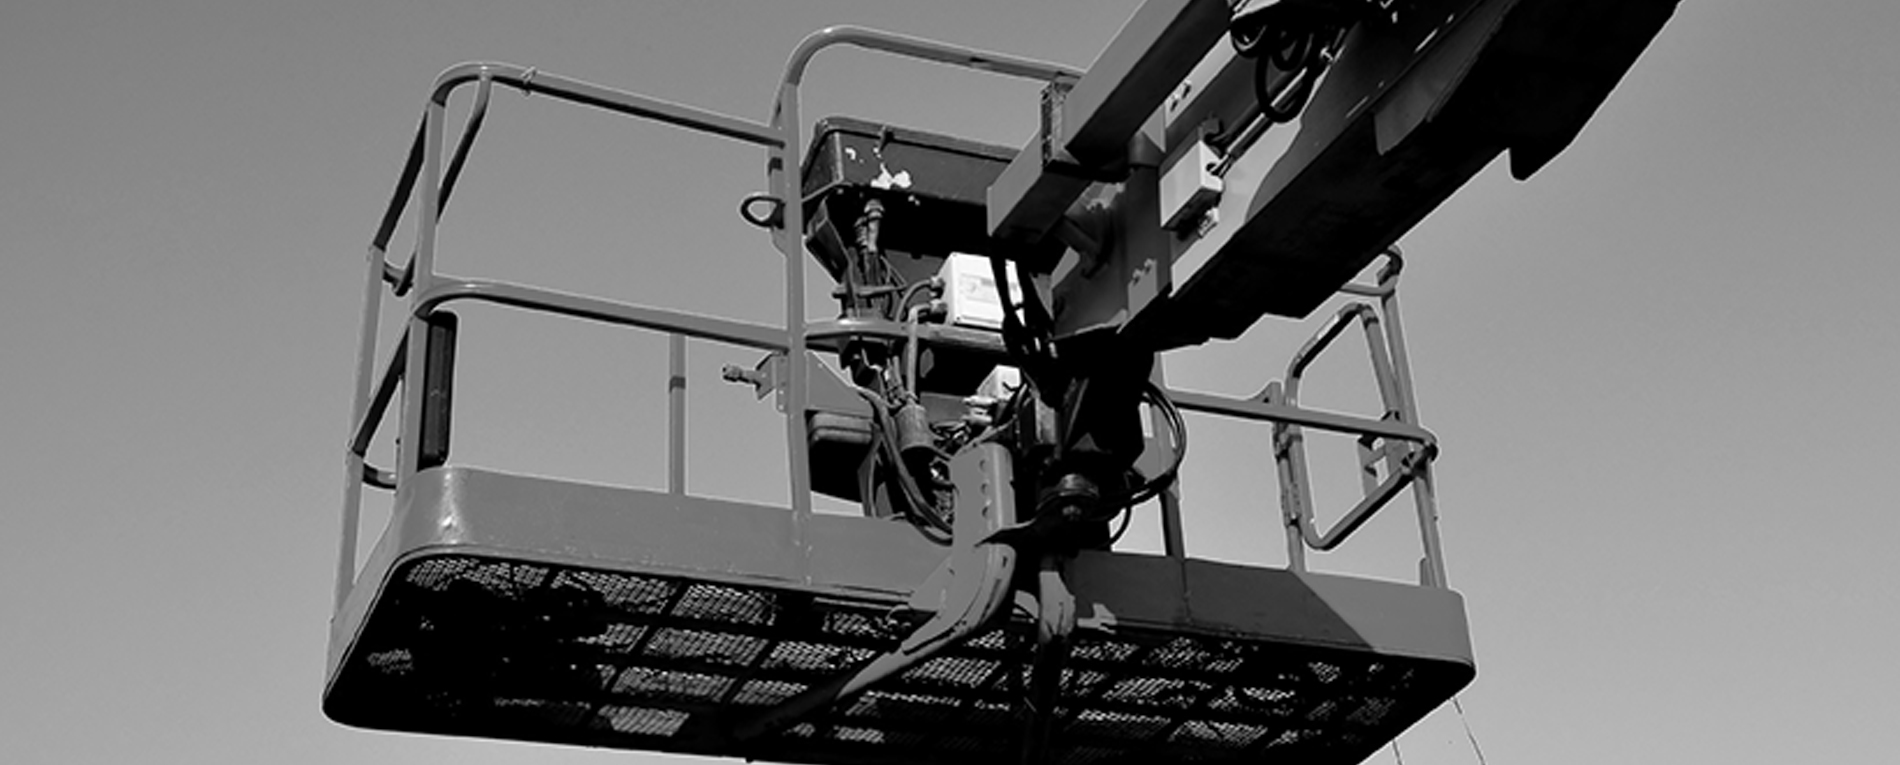 Osha Bridge Crane Inspection : Aerial lift course outline crane inspection operator